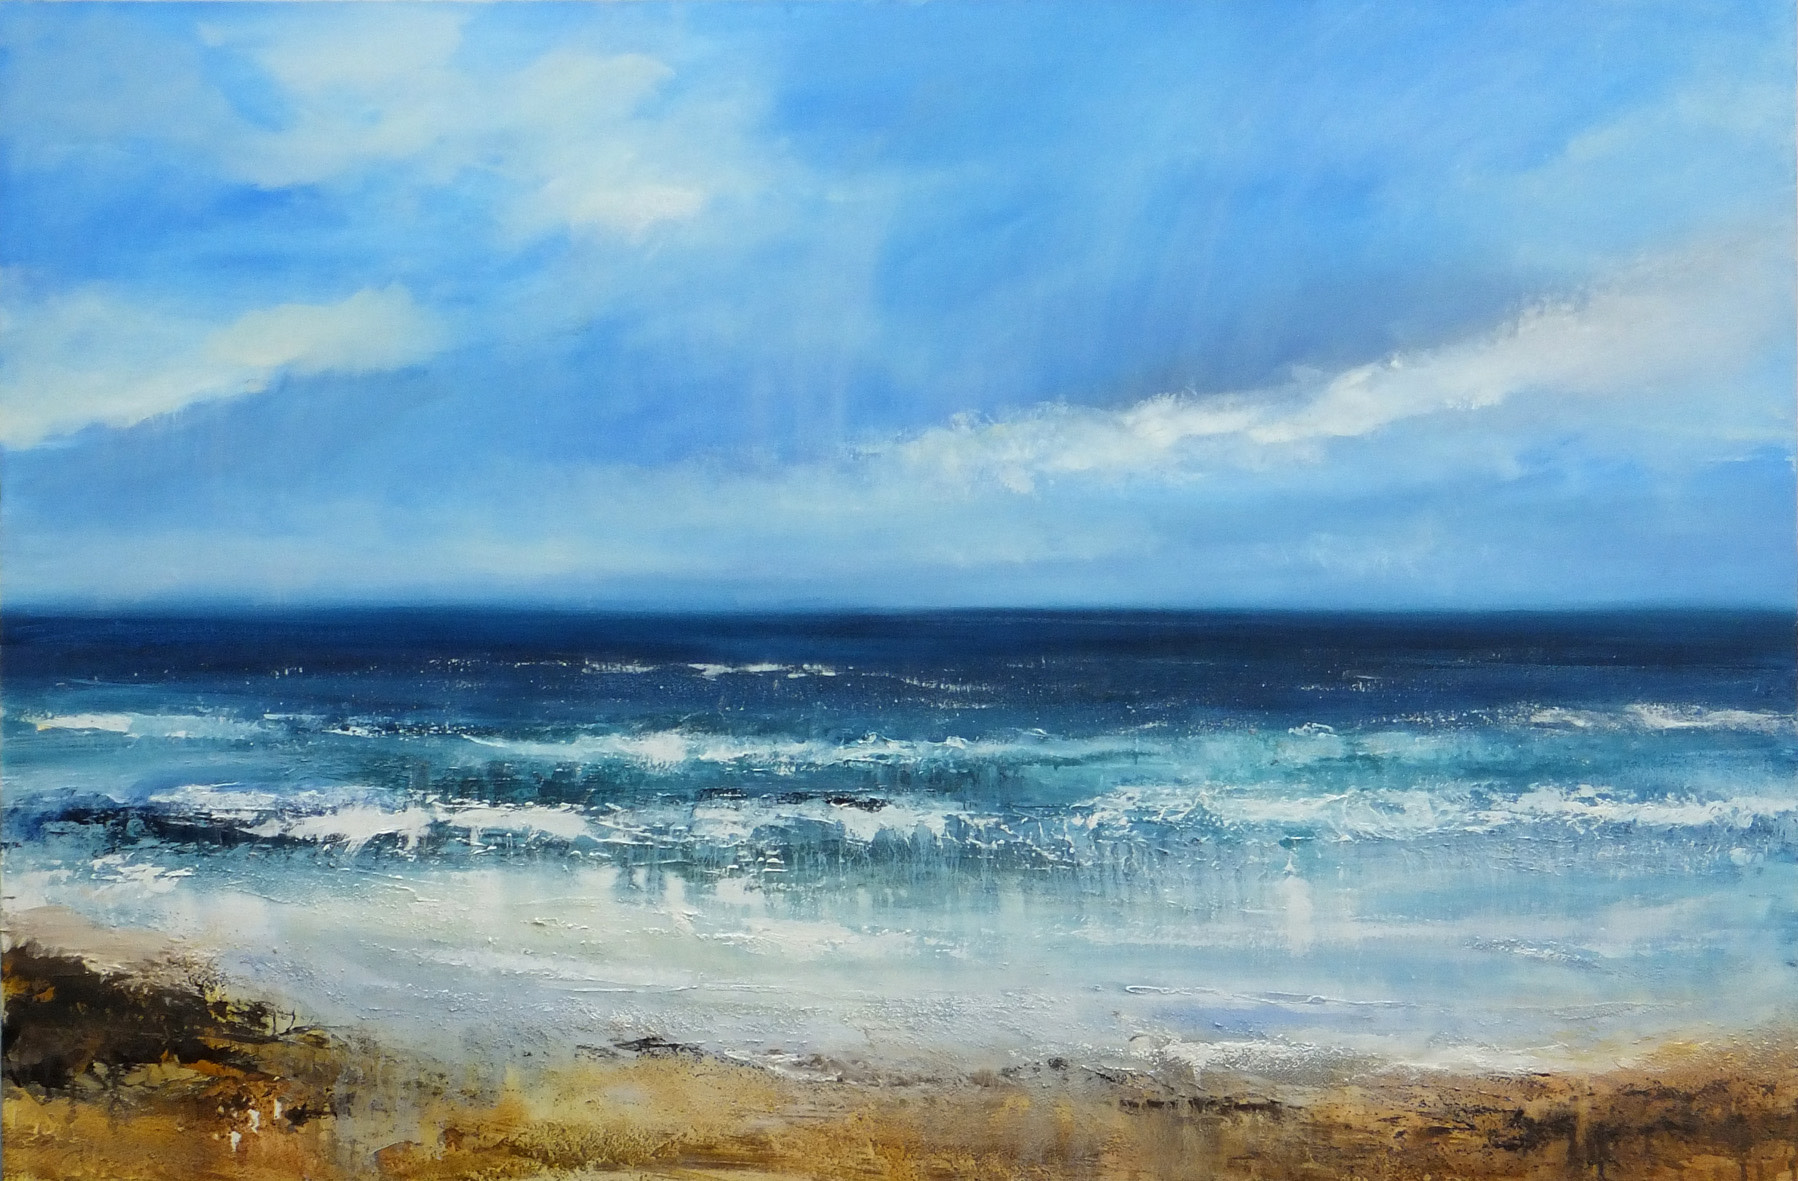 <span class=&#34;link fancybox-details-link&#34;><a href=&#34;/artists/66-joanne-last/works/5549-joanne-last-walking-from-chapel-porth-2018/&#34;>View Detail Page</a></span><div class=&#34;artist&#34;><strong>Joanne Last</strong></div> <div class=&#34;title&#34;><em>Walking from Chapel Porth</em>, 2018</div> <div class=&#34;signed_and_dated&#34;>signed by the artist</div> <div class=&#34;medium&#34;> oil on canvas</div> <div class=&#34;dimensions&#34;>100 x 150 cm<br /> 39 3/8 x 59 1/8 inches</div><div class=&#34;copyright_line&#34;>£ 290 x 10 Months, OwnArt 0% APR</div>